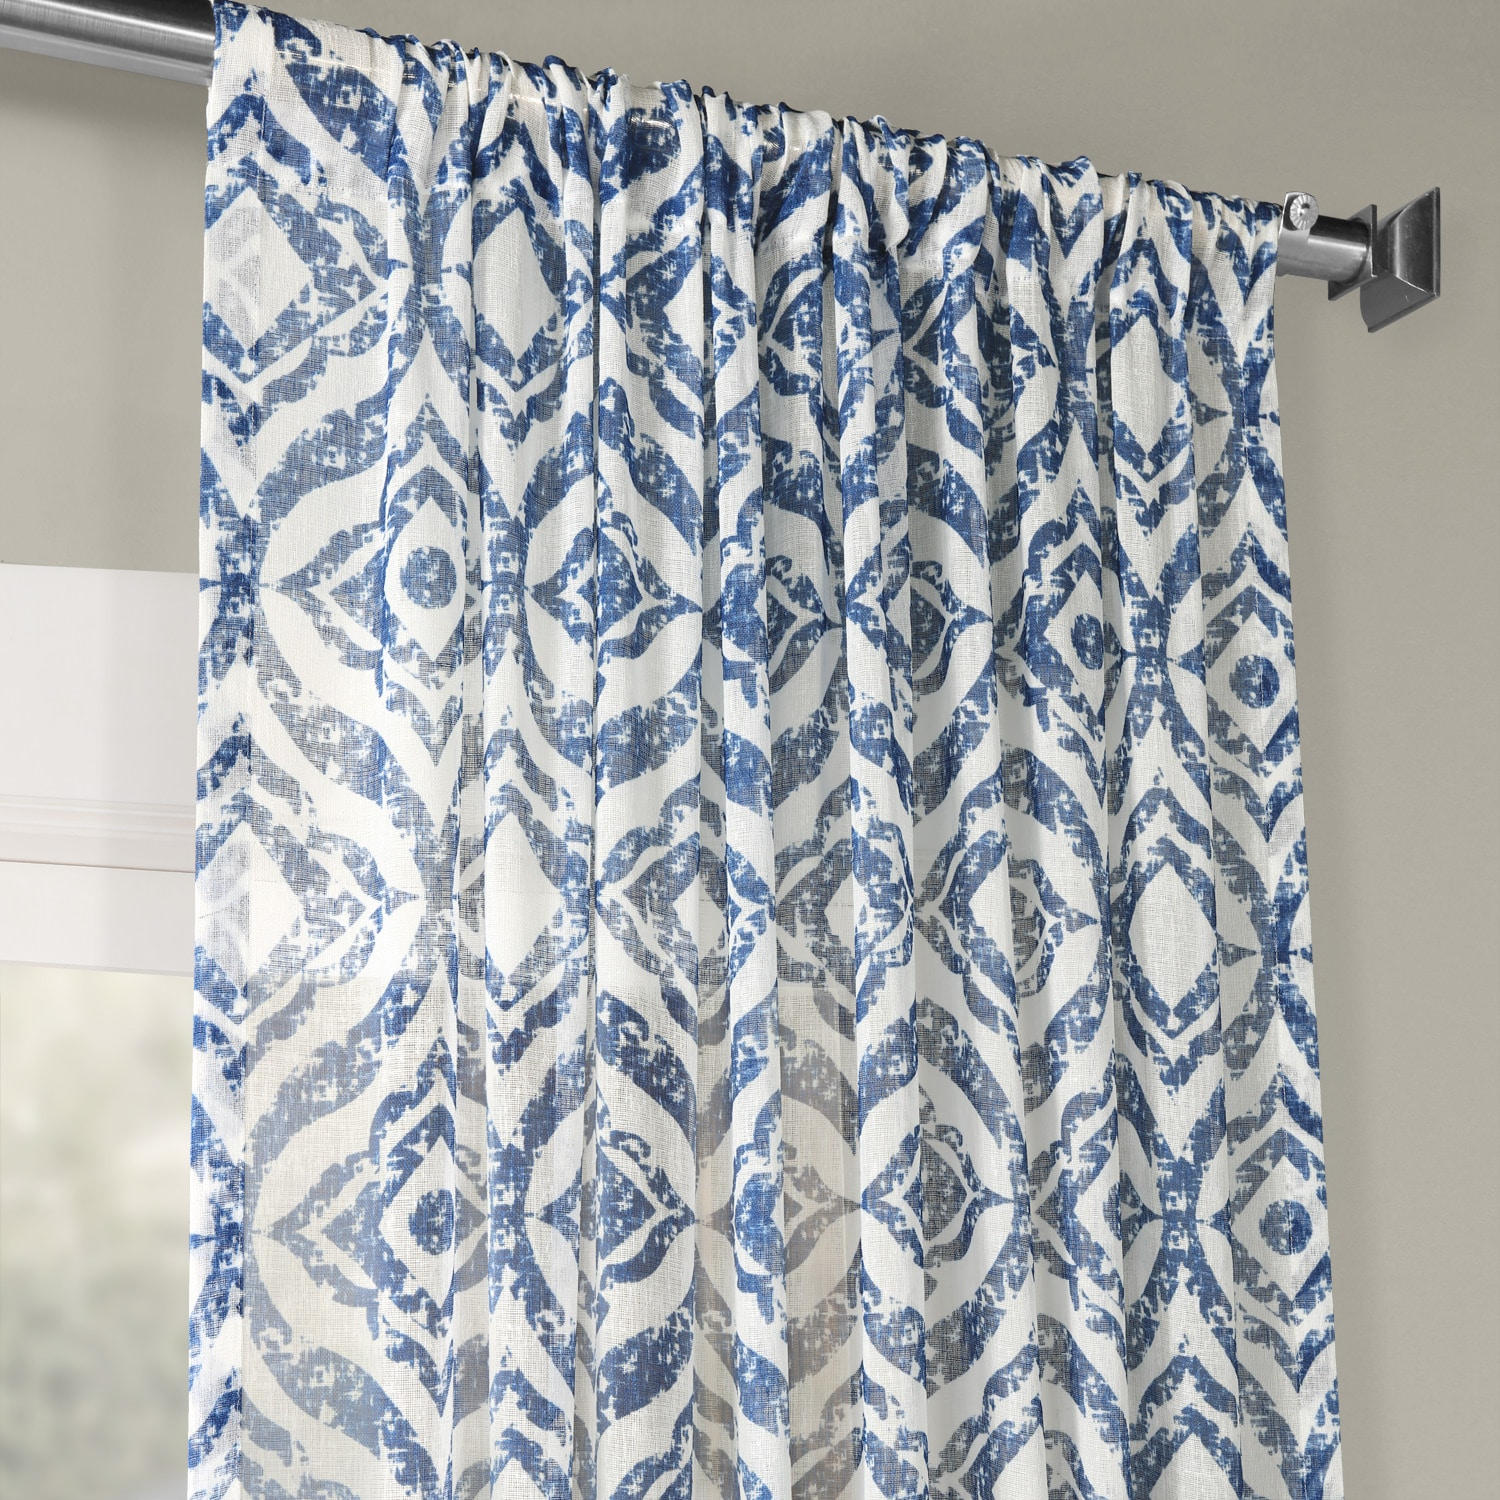 Plaza Blue Printed Faux Linen Sheer Curtain